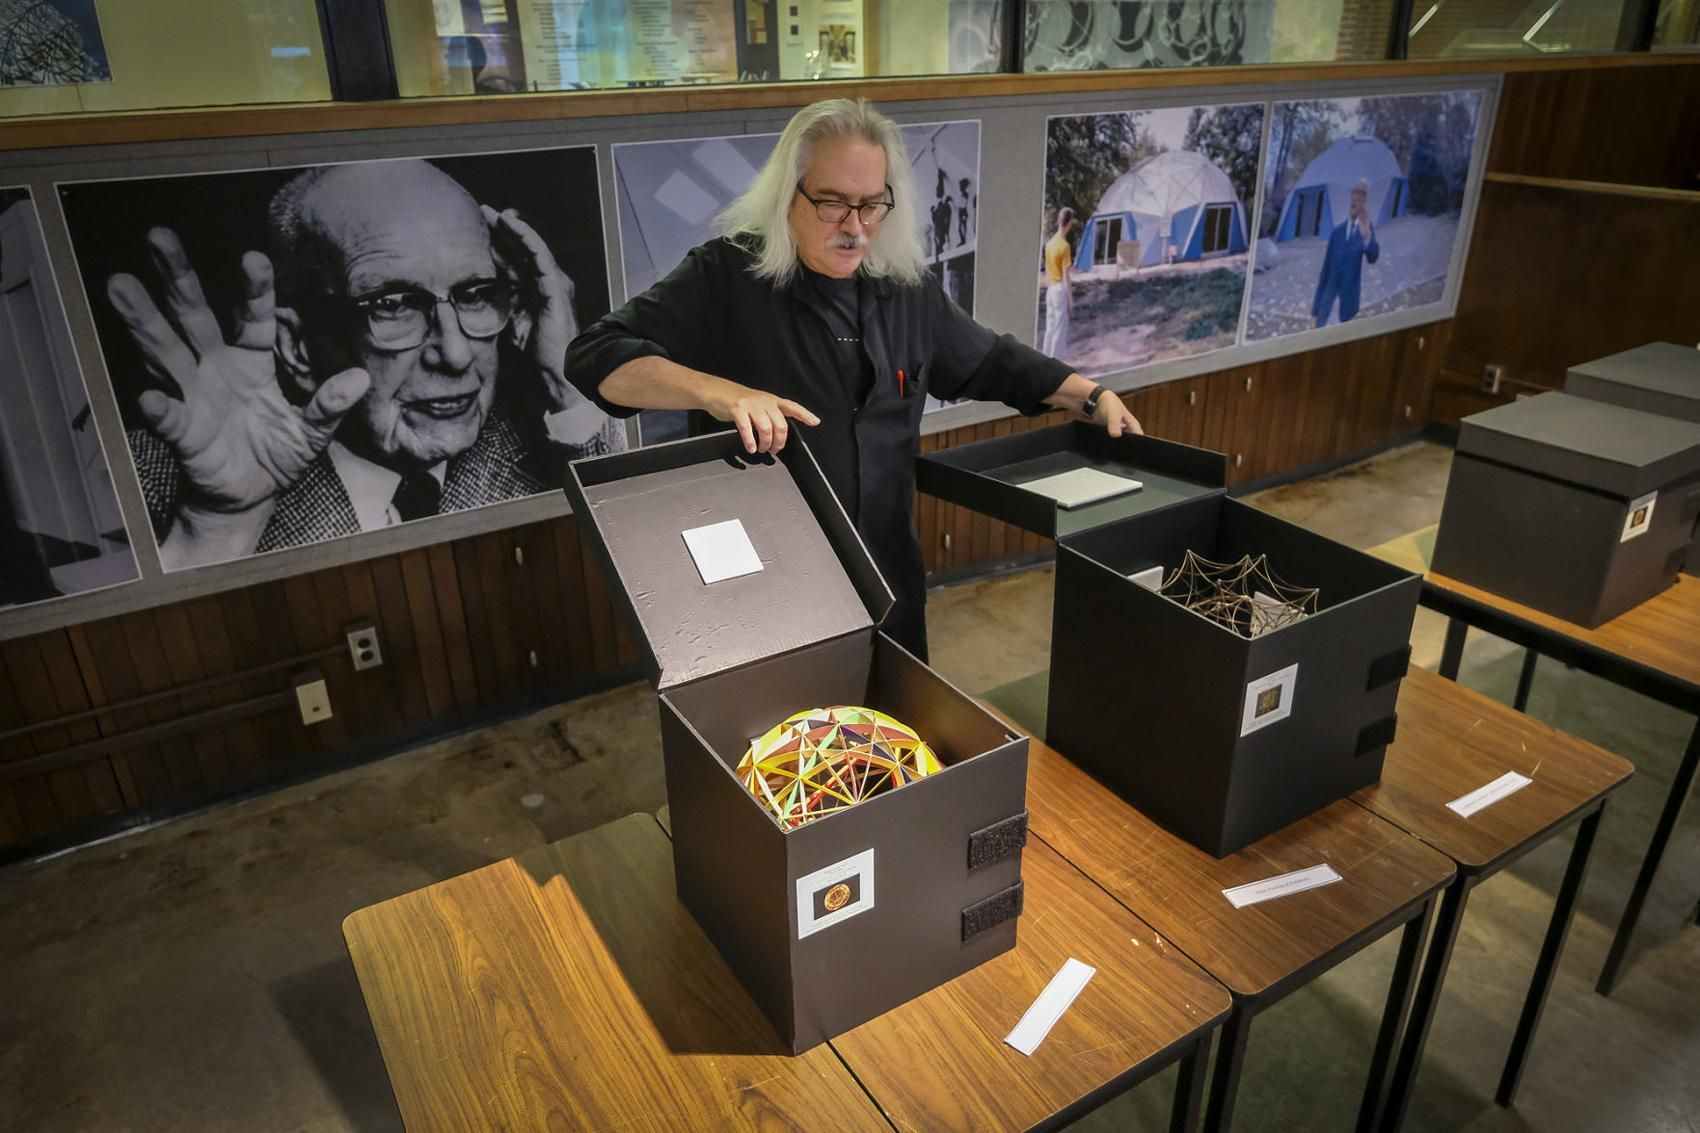 Fifty years of Fuller SIU Carbondale celebrates iconic